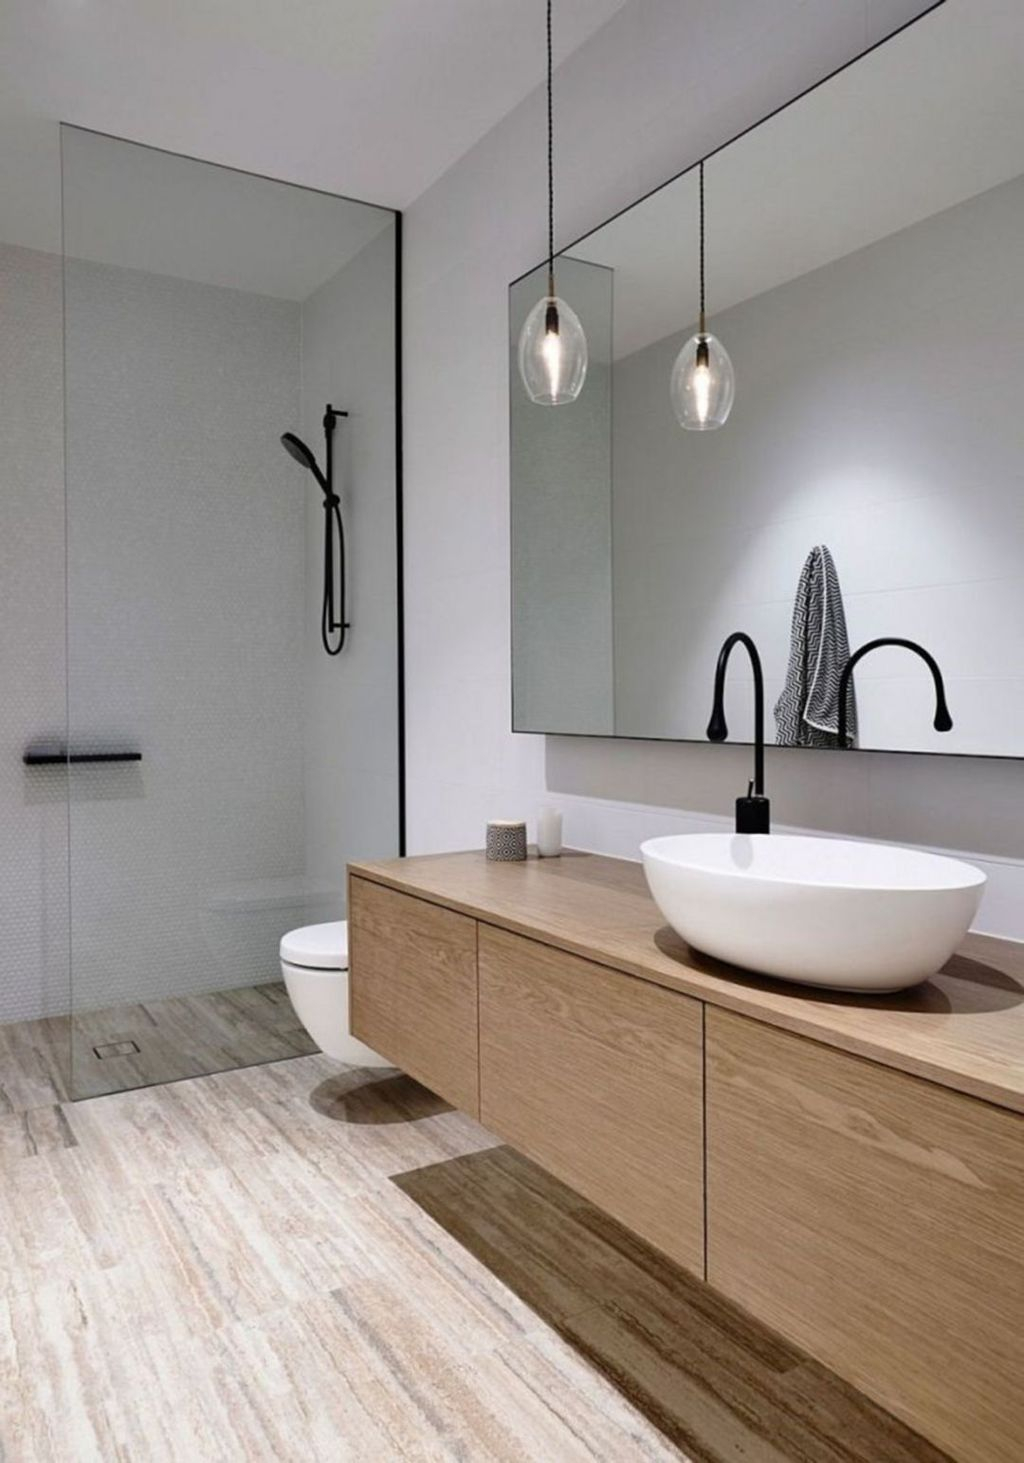 Best Minimalist Bathroom Design Ideas That Trendy Now 24